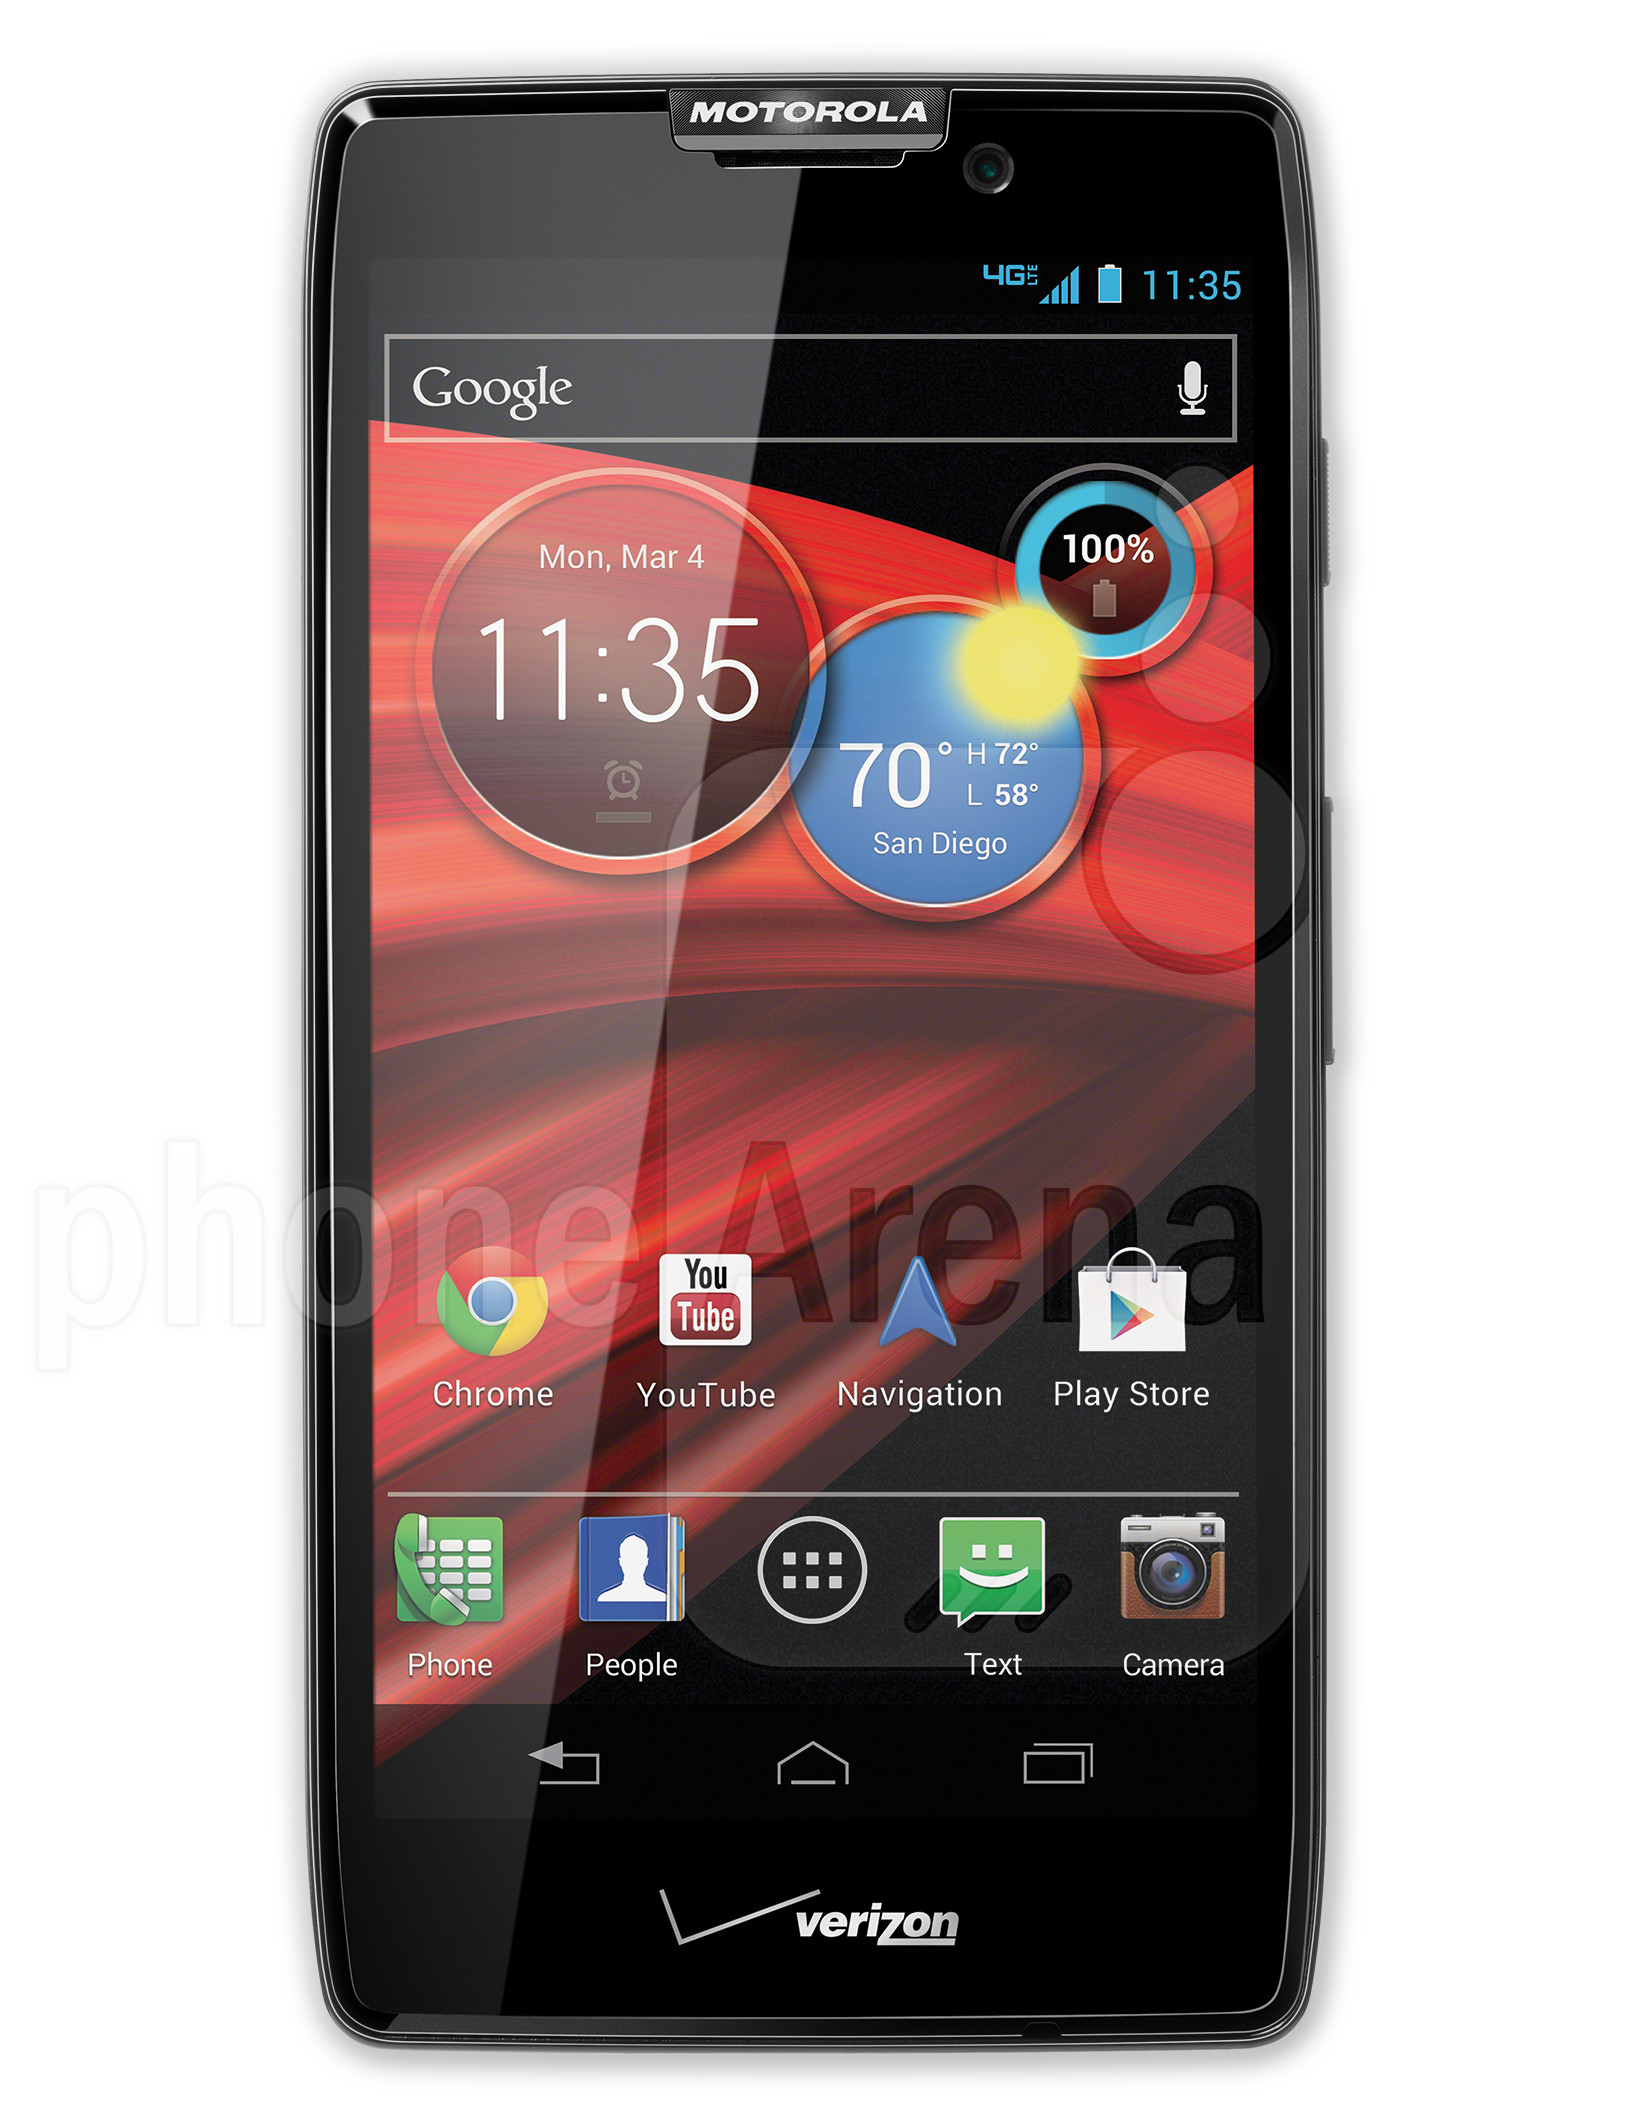 Motorola Droid RAZR MAXX HD Black Friday and Cyber Monday 2012 Deals